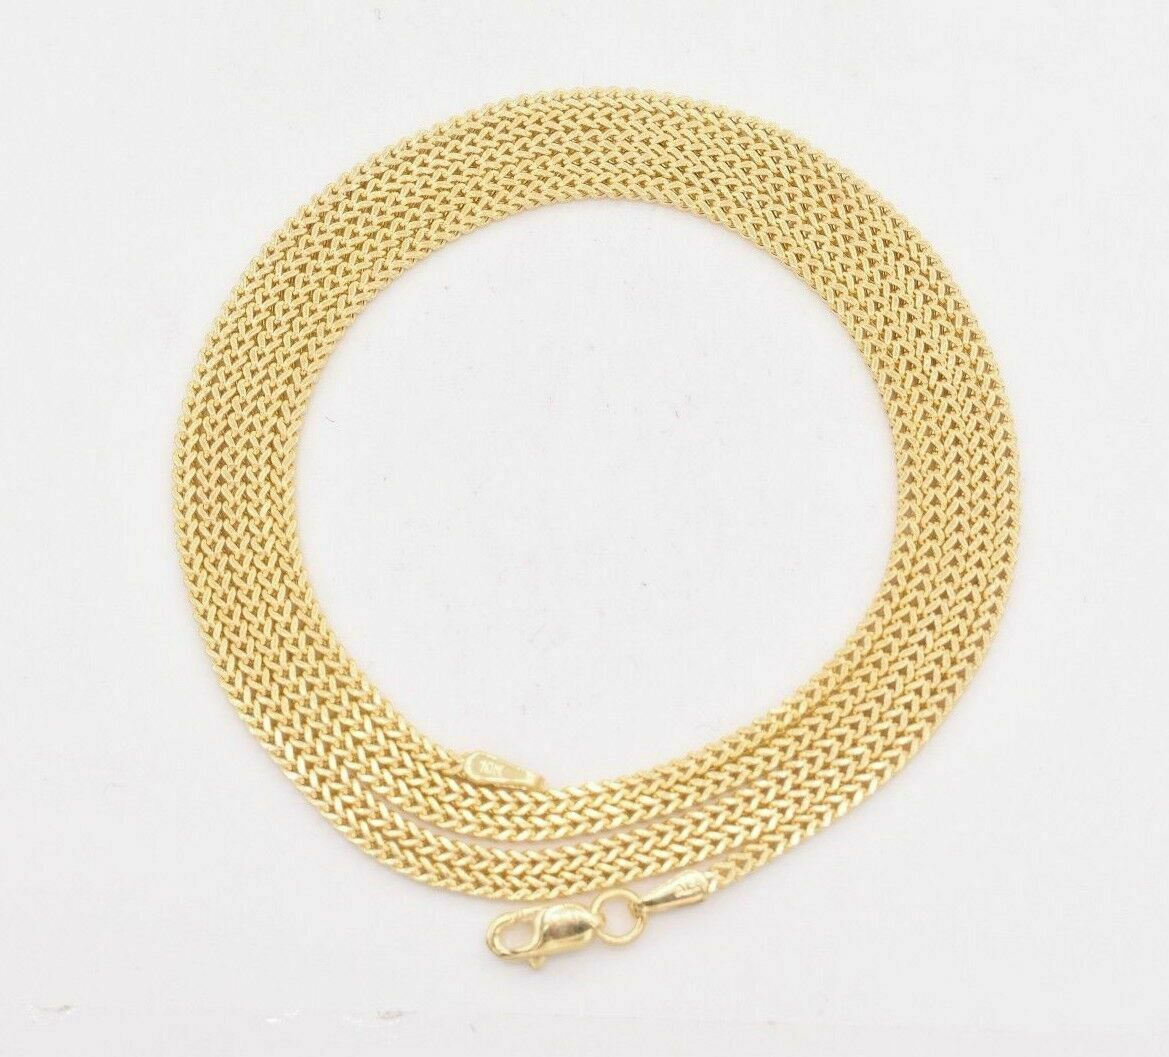 with Secure Lobster Lock Clasp Jewel Tie 14k Yellow Gold 1.5mm Diamond-Cut Rope Chain